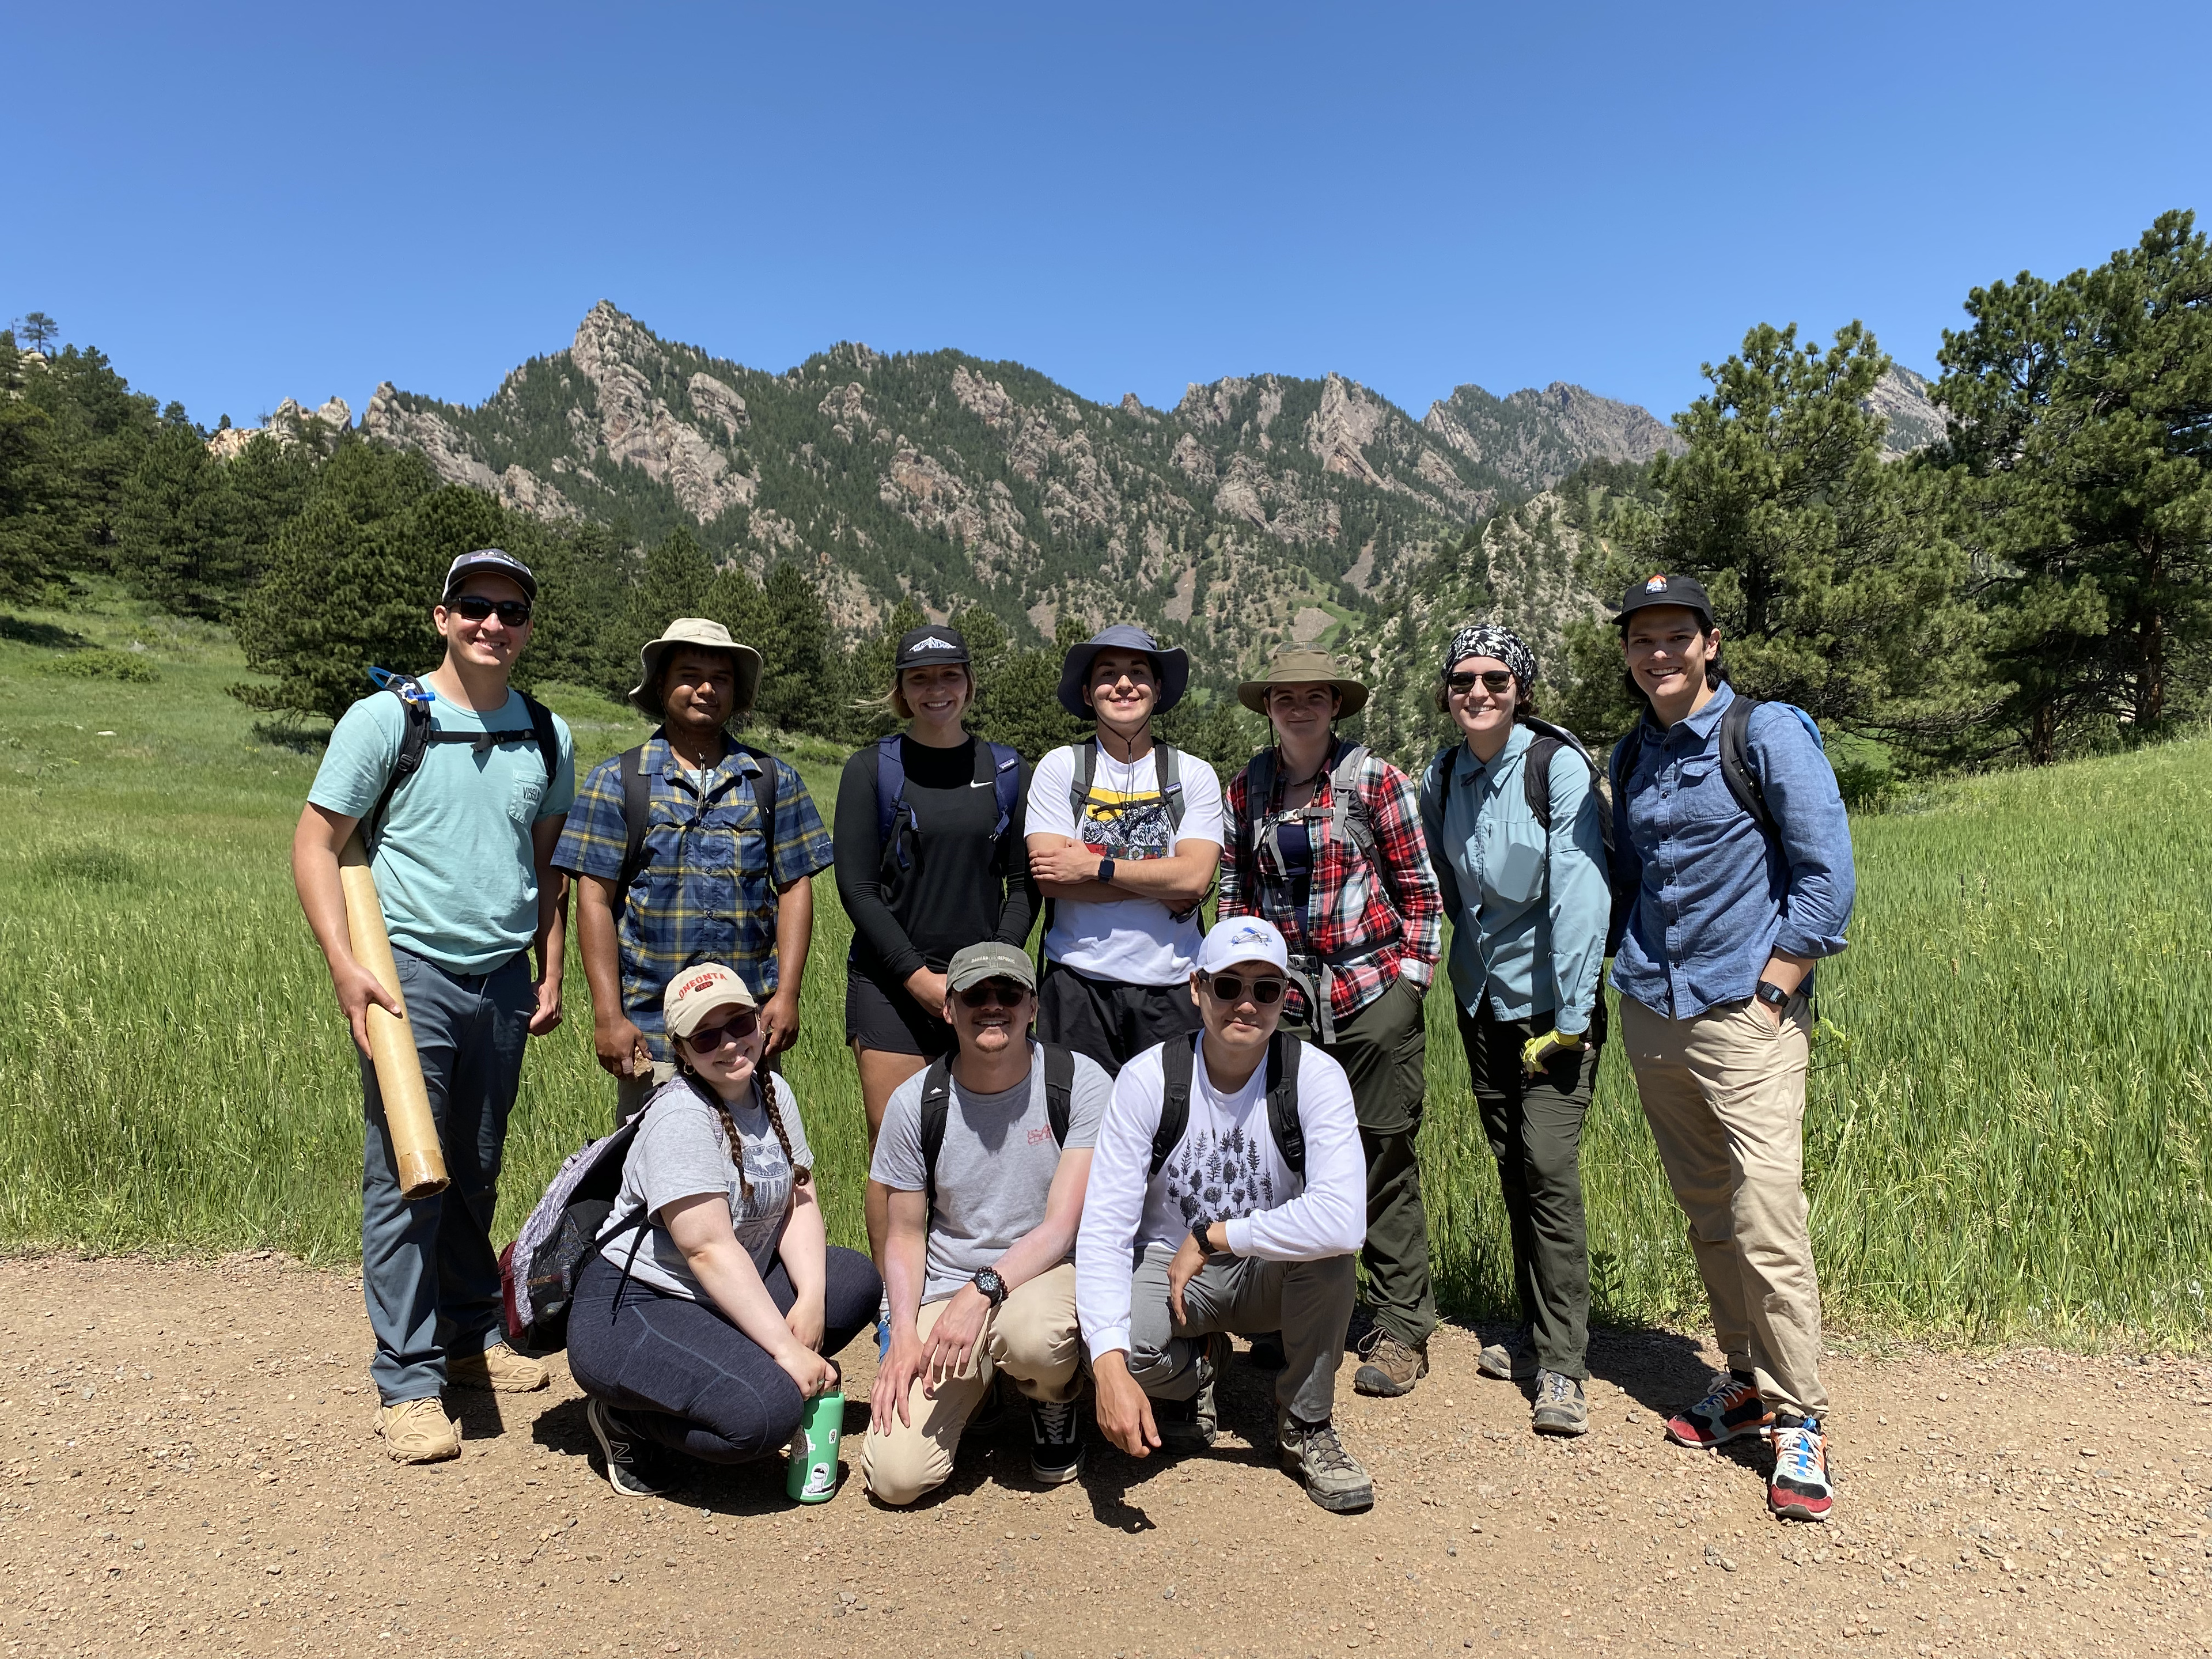 RESESS and GLP interns take in a day of Front Range geology and graduate school research exposure on a field trip led by Kevin Mahan (CU) and fellow graduate students: Enrique Chon, Michael Frothingham, Ciara Asamoto, Joel Johnson, Ellen Alexander, and Elizabeth Menezes. Boulder, CO. June 12, 2021. (Photo/Kelsey Russo-Nixon, UNAVCO).